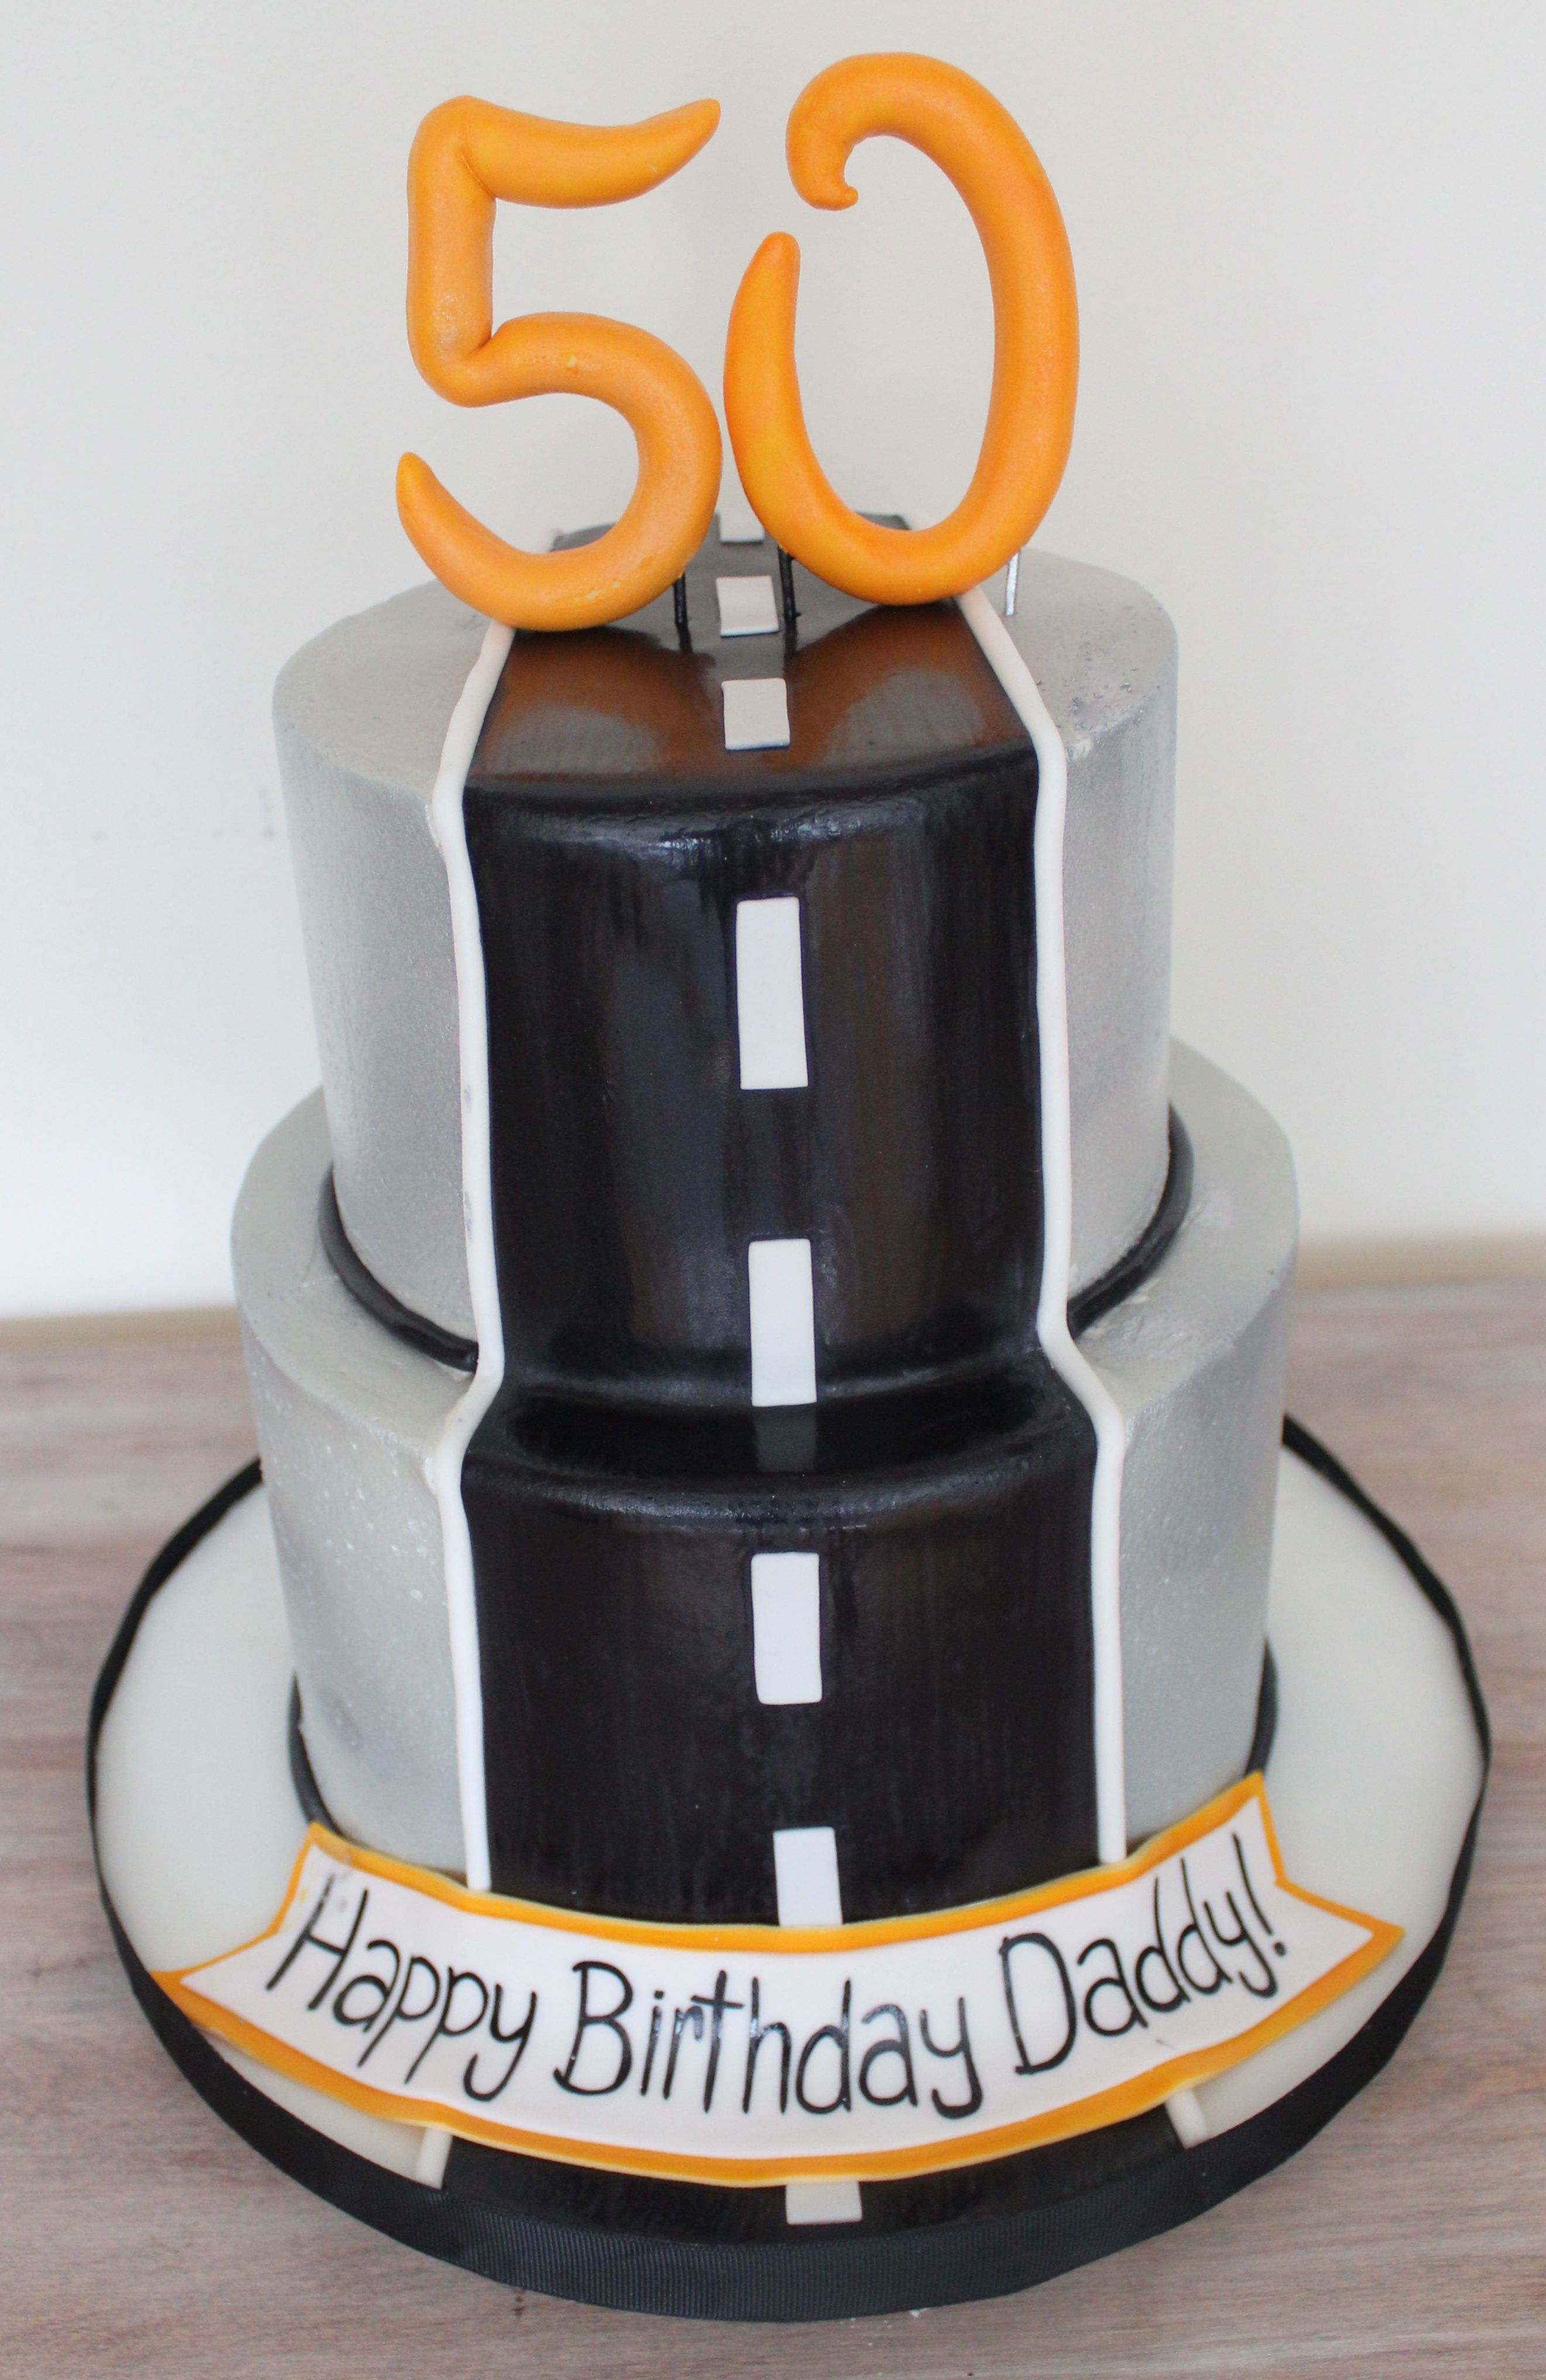 Male Birthday Cake 50th With Odd Job Bits With Images Birthday